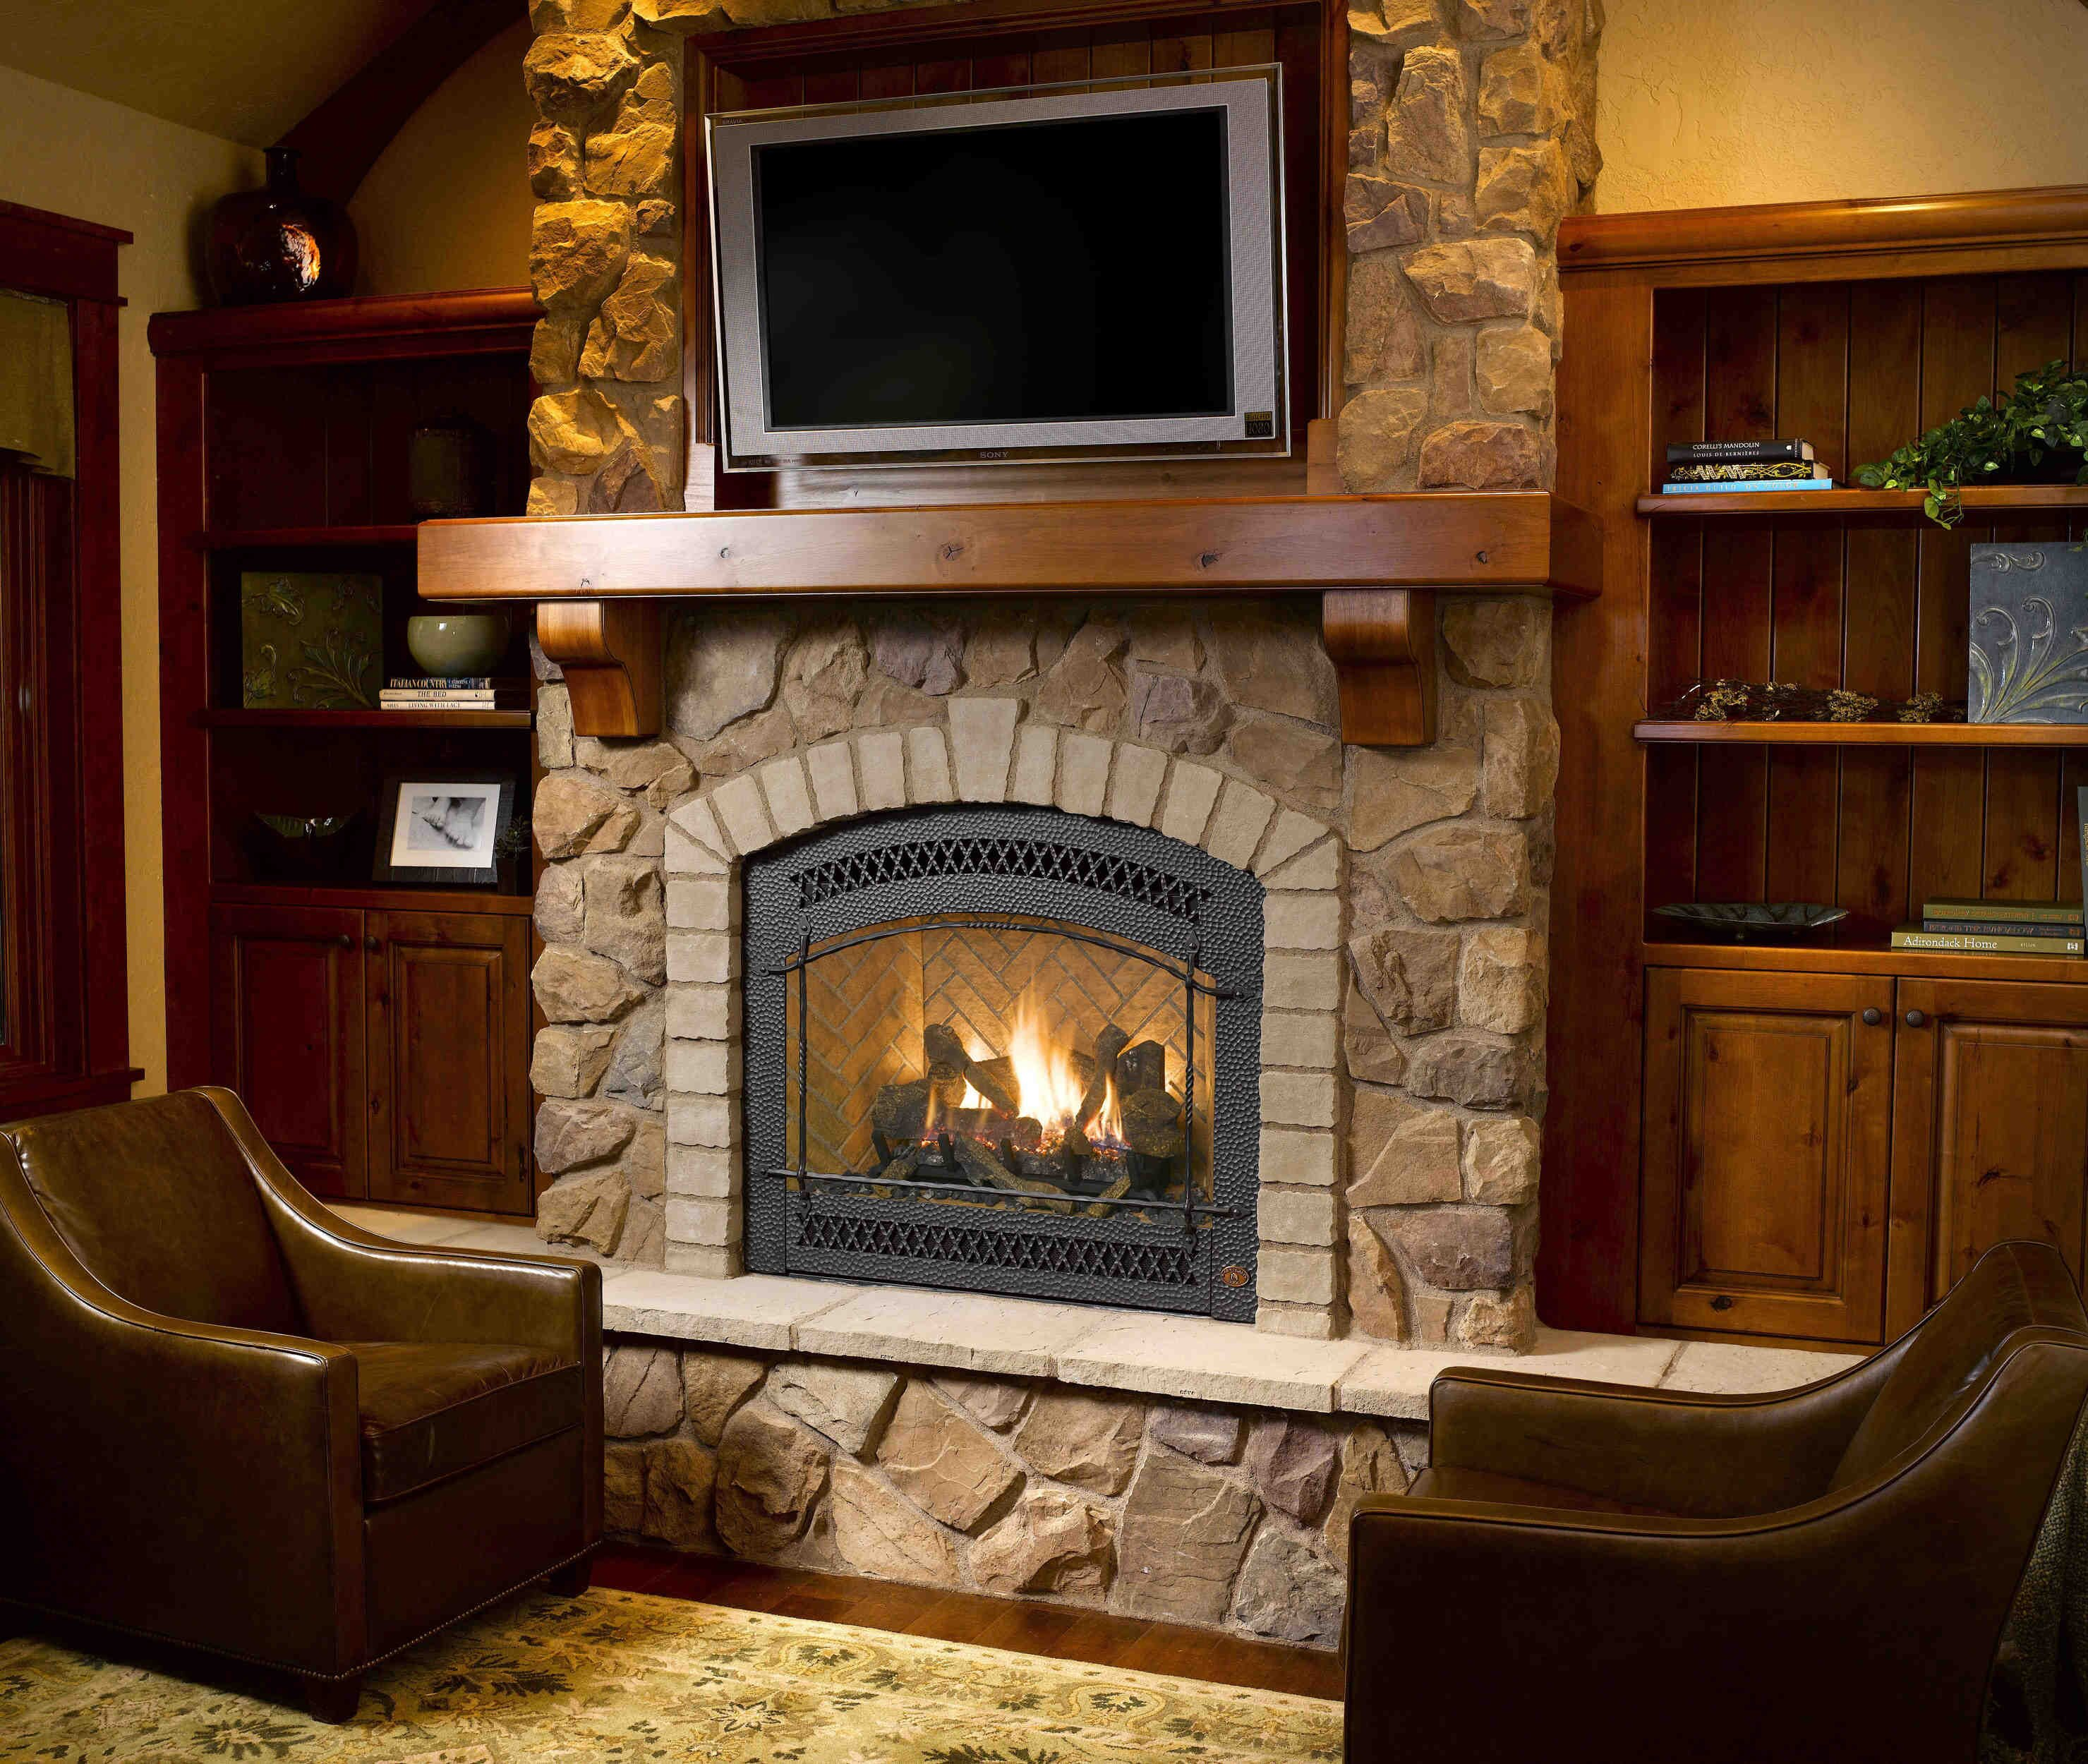 unlimited glo unique updated impressive on from interior slimline fireplace and fireplaces heat home installations